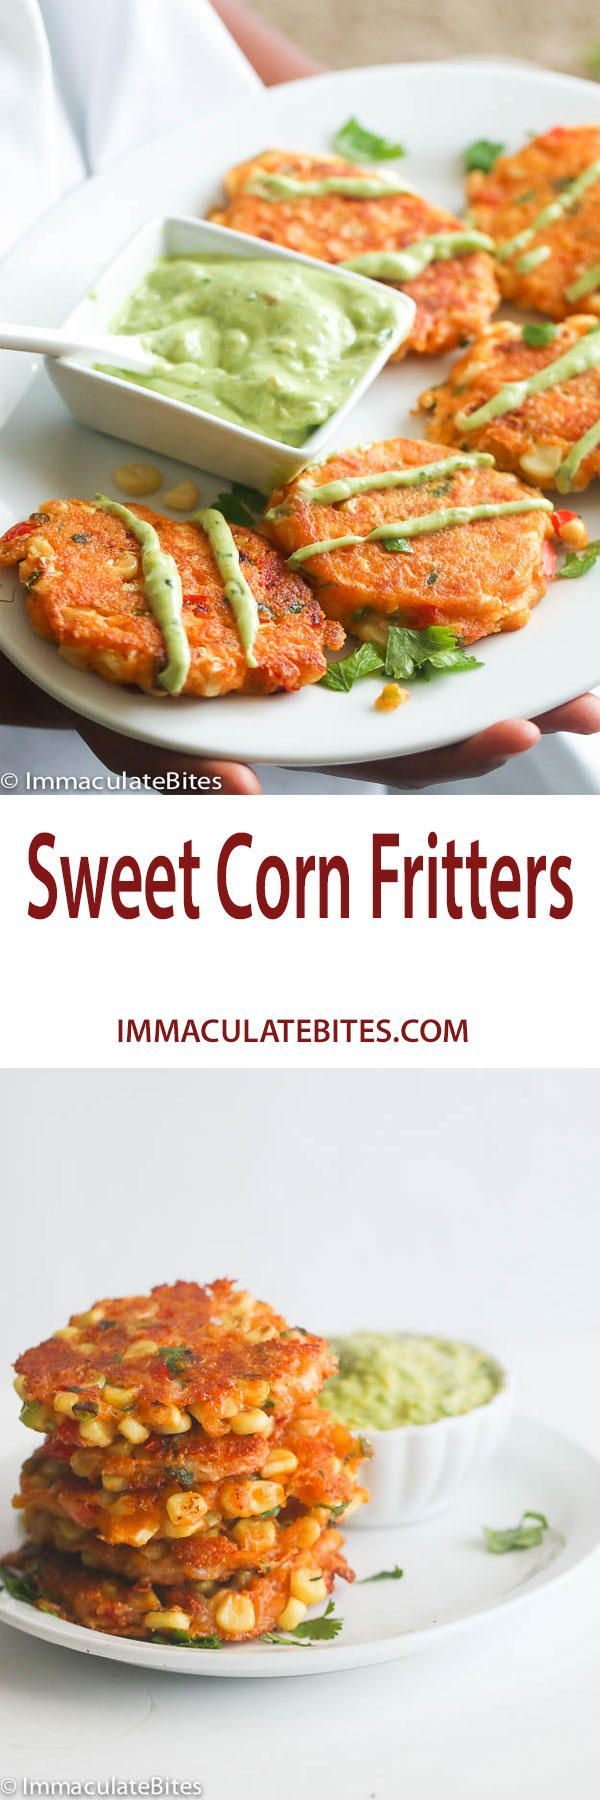 ... Corn Fritters on Pinterest | Fritters, Cauliflower Fritters and Corn